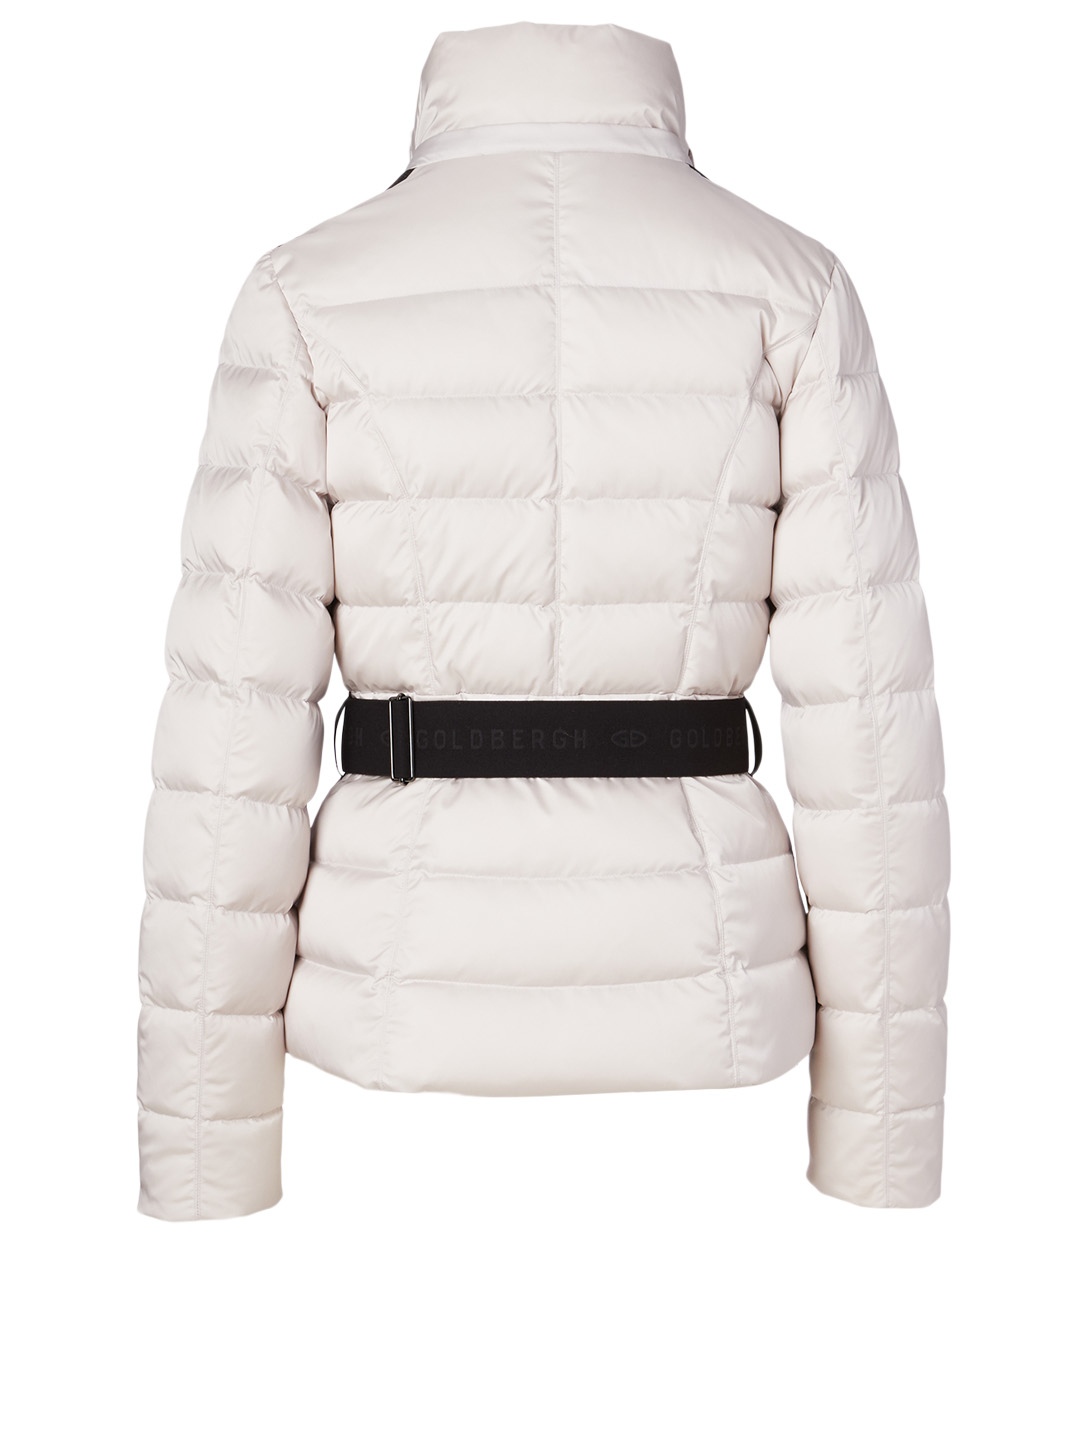 GOLDBERGH Soldis Down Jacket With Belt Women's White